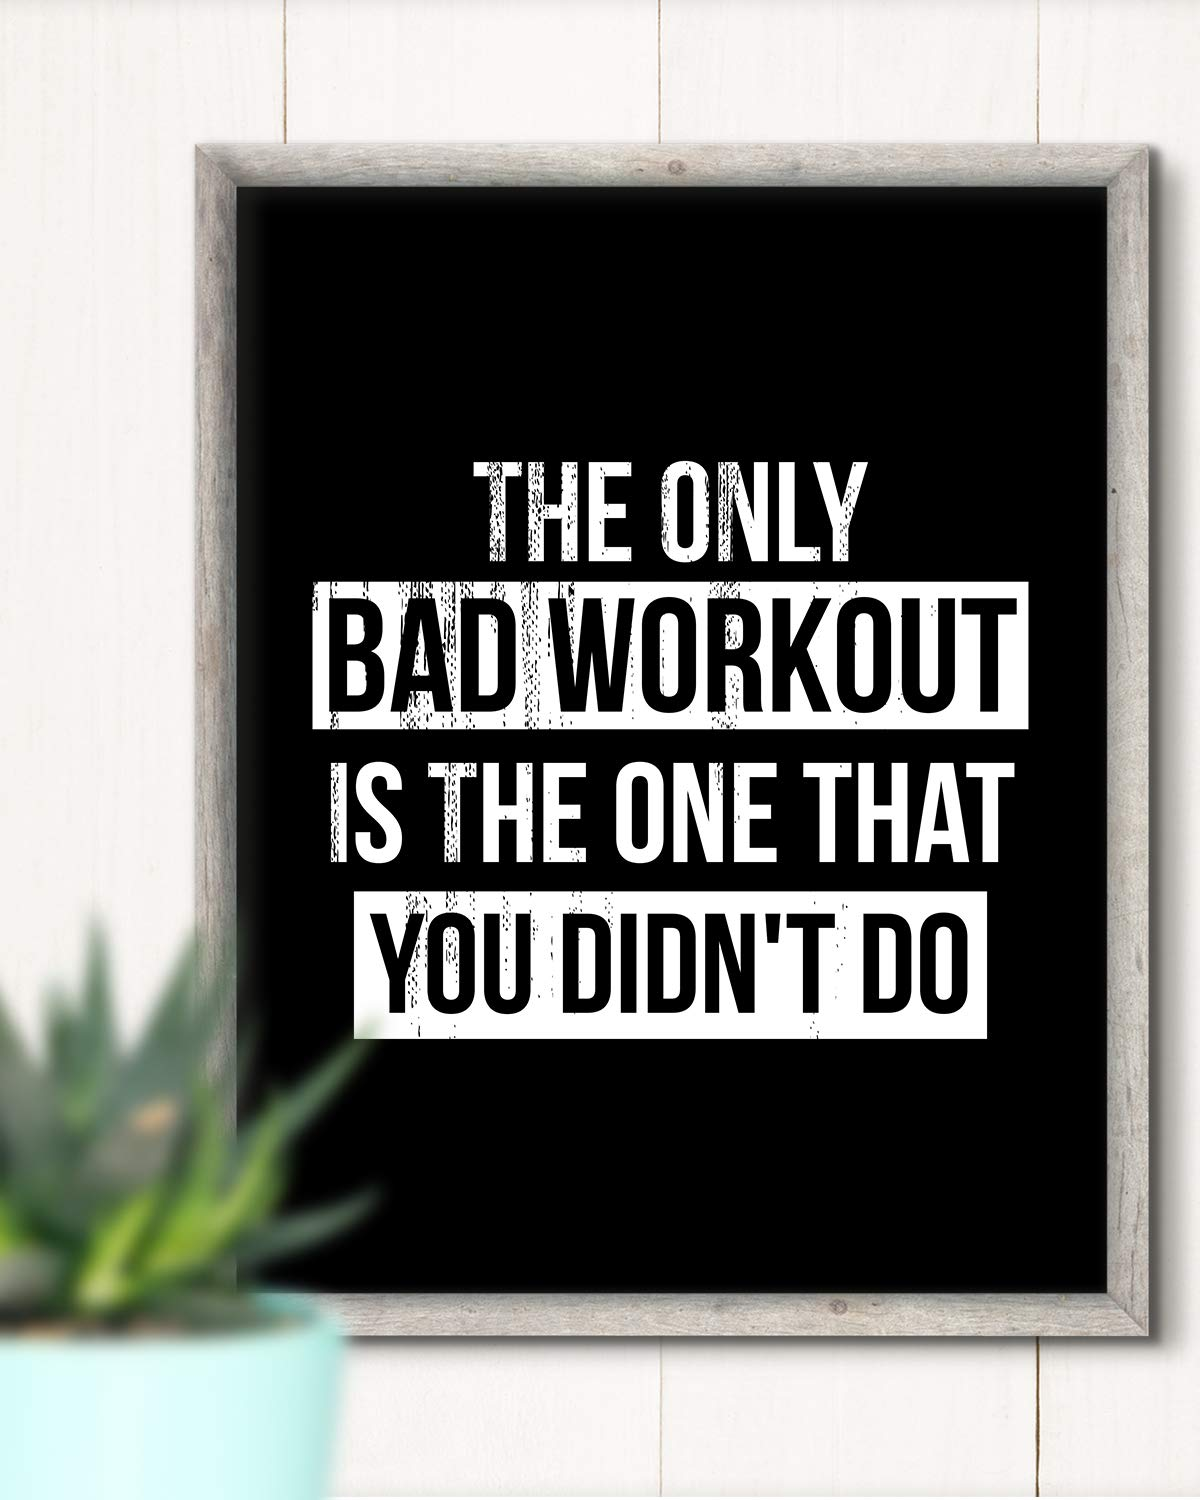 8x10 unframed print great for gym workout or exercise room Wall Decor Art Print The Only Bad Workout Is The One That You Didnt Do